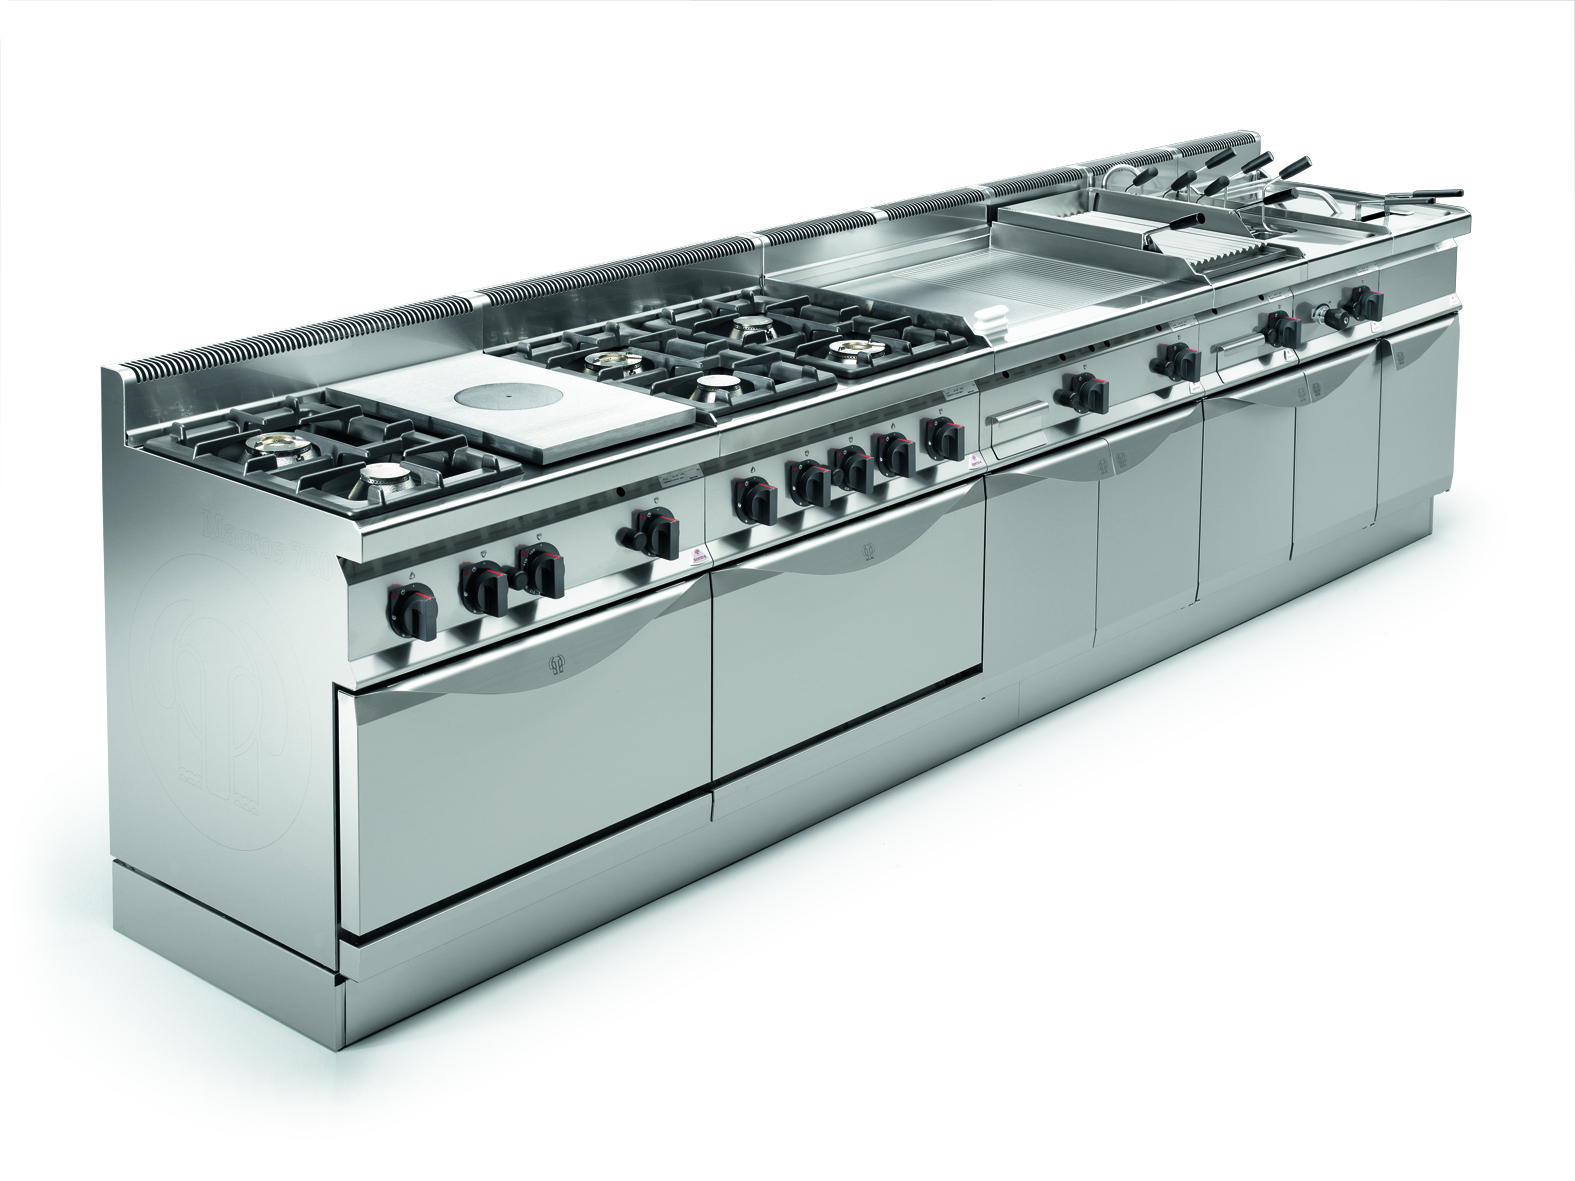 Berto's 700 Series Gas with ovens